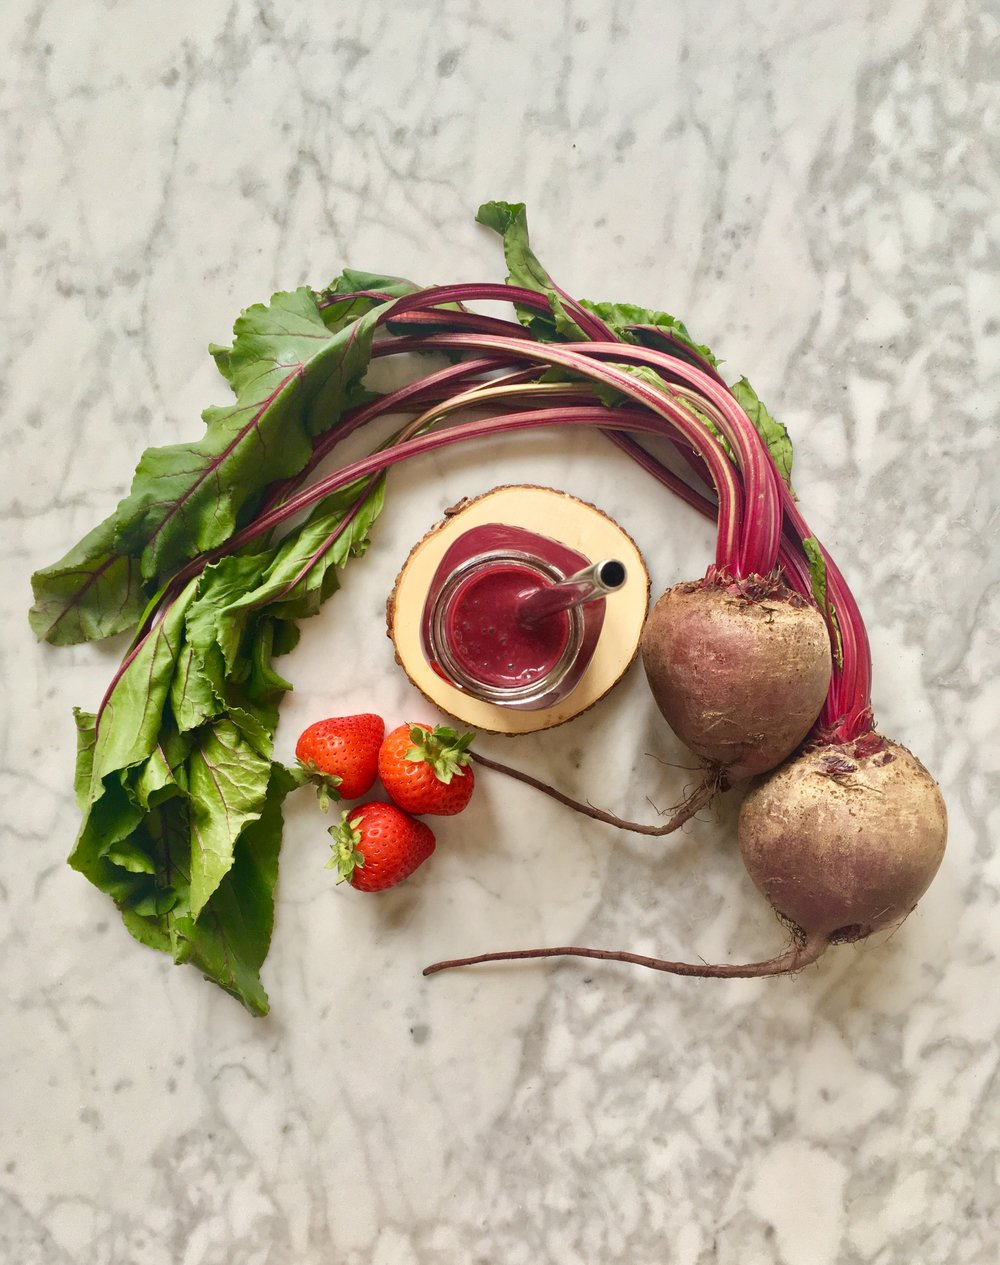 Beet Around the Berry Bush 1.jpg